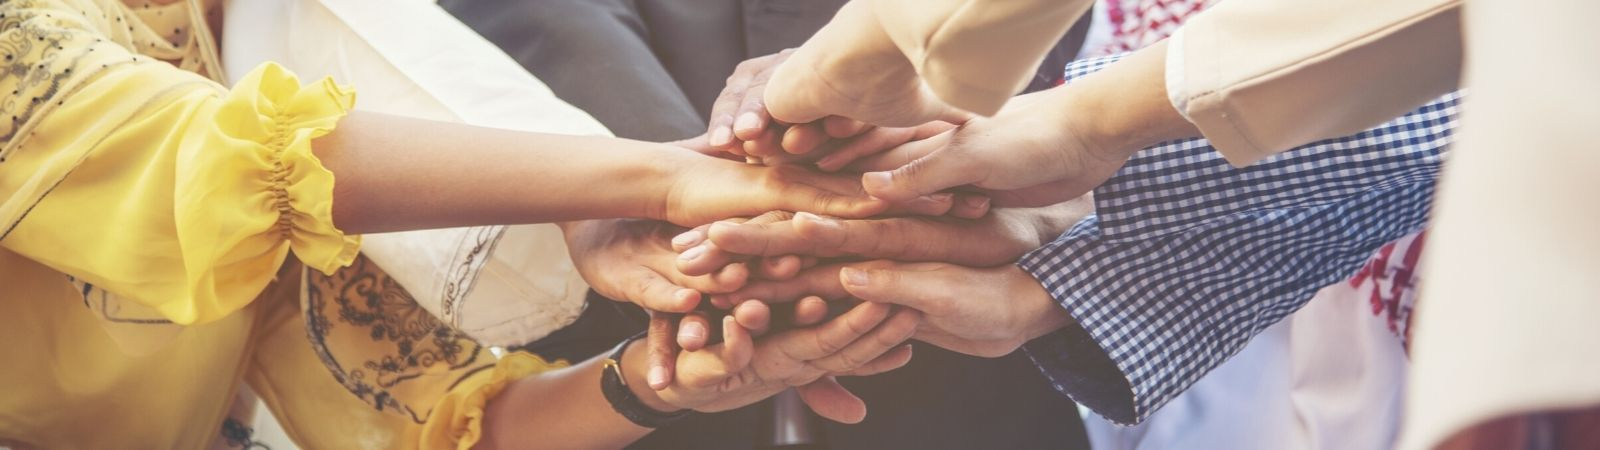 Diverse professionals from around the globe putting hands in the middle of a huddle to symbolize working together and supplier diversity.